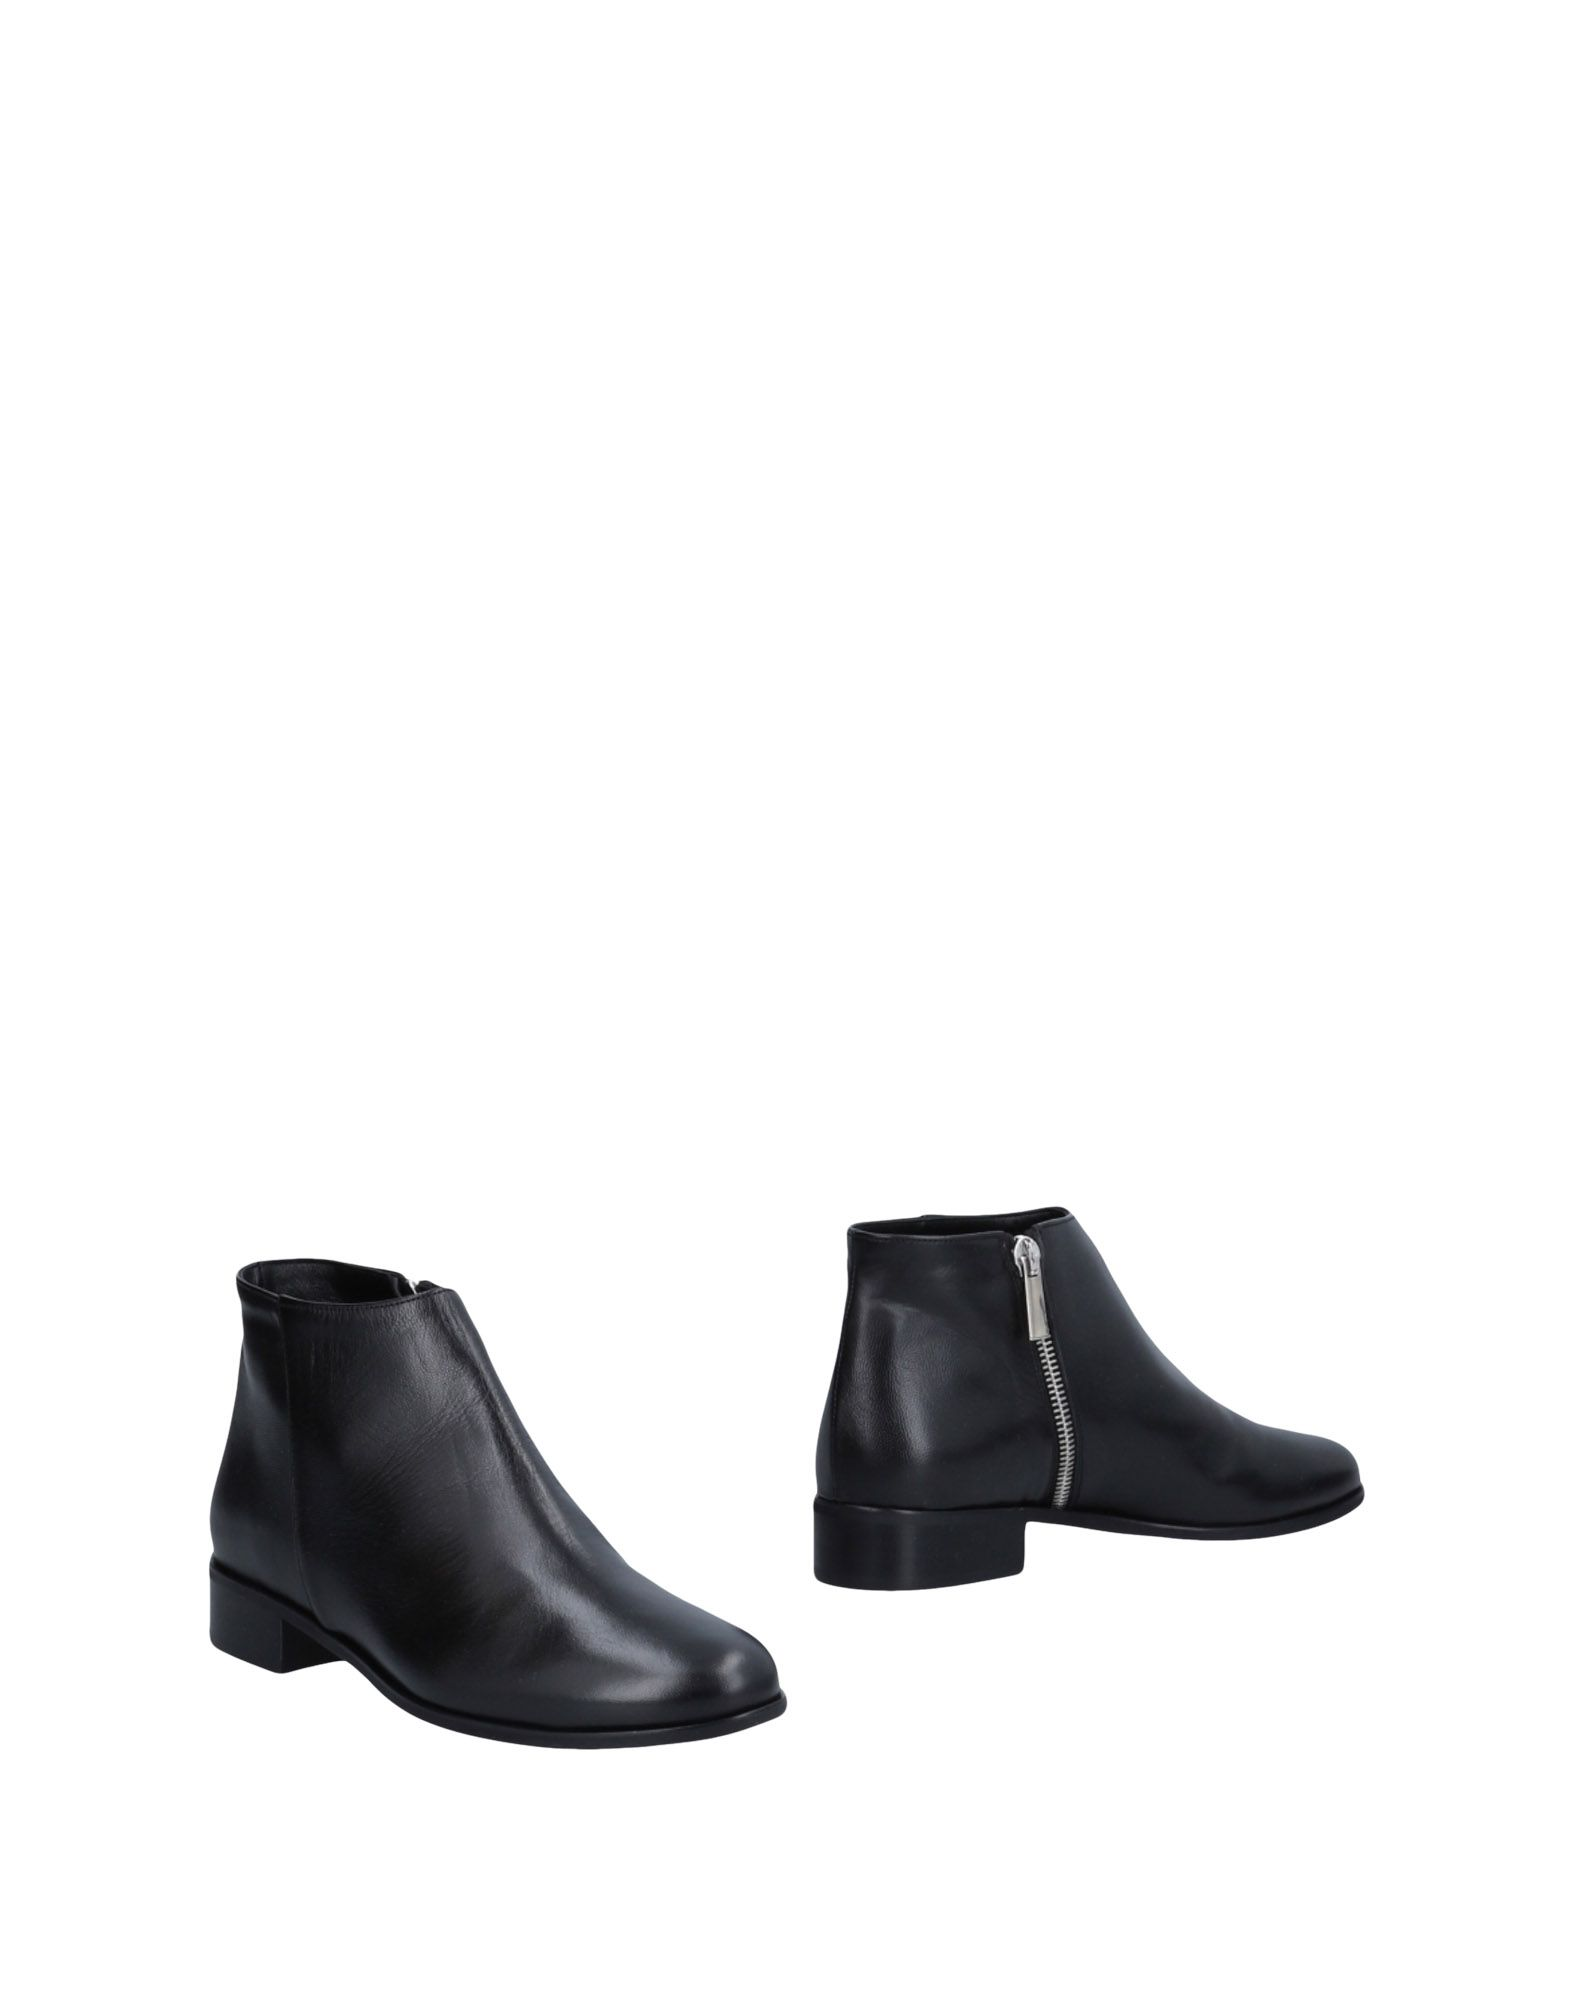 Prezioso Ankle Boot - Women Prezioso  Ankle Boots online on  Prezioso United Kingdom - 11491168JM 7005d3